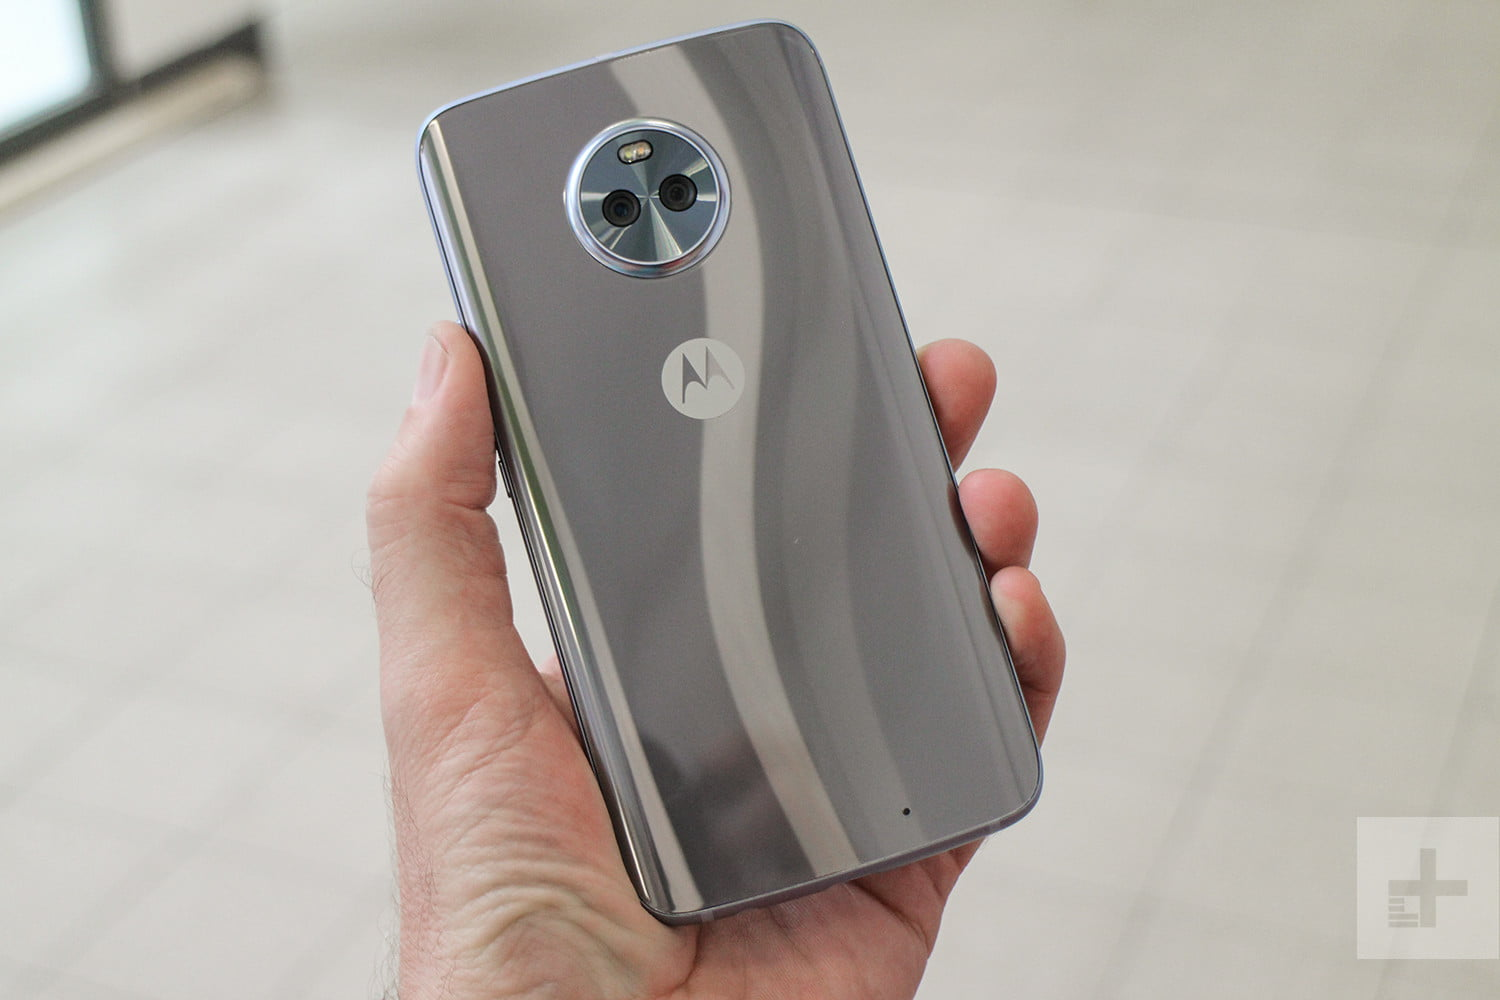 sale retailer c0856 beb80 The best Moto X4 cases and covers to safeguard your smartphone